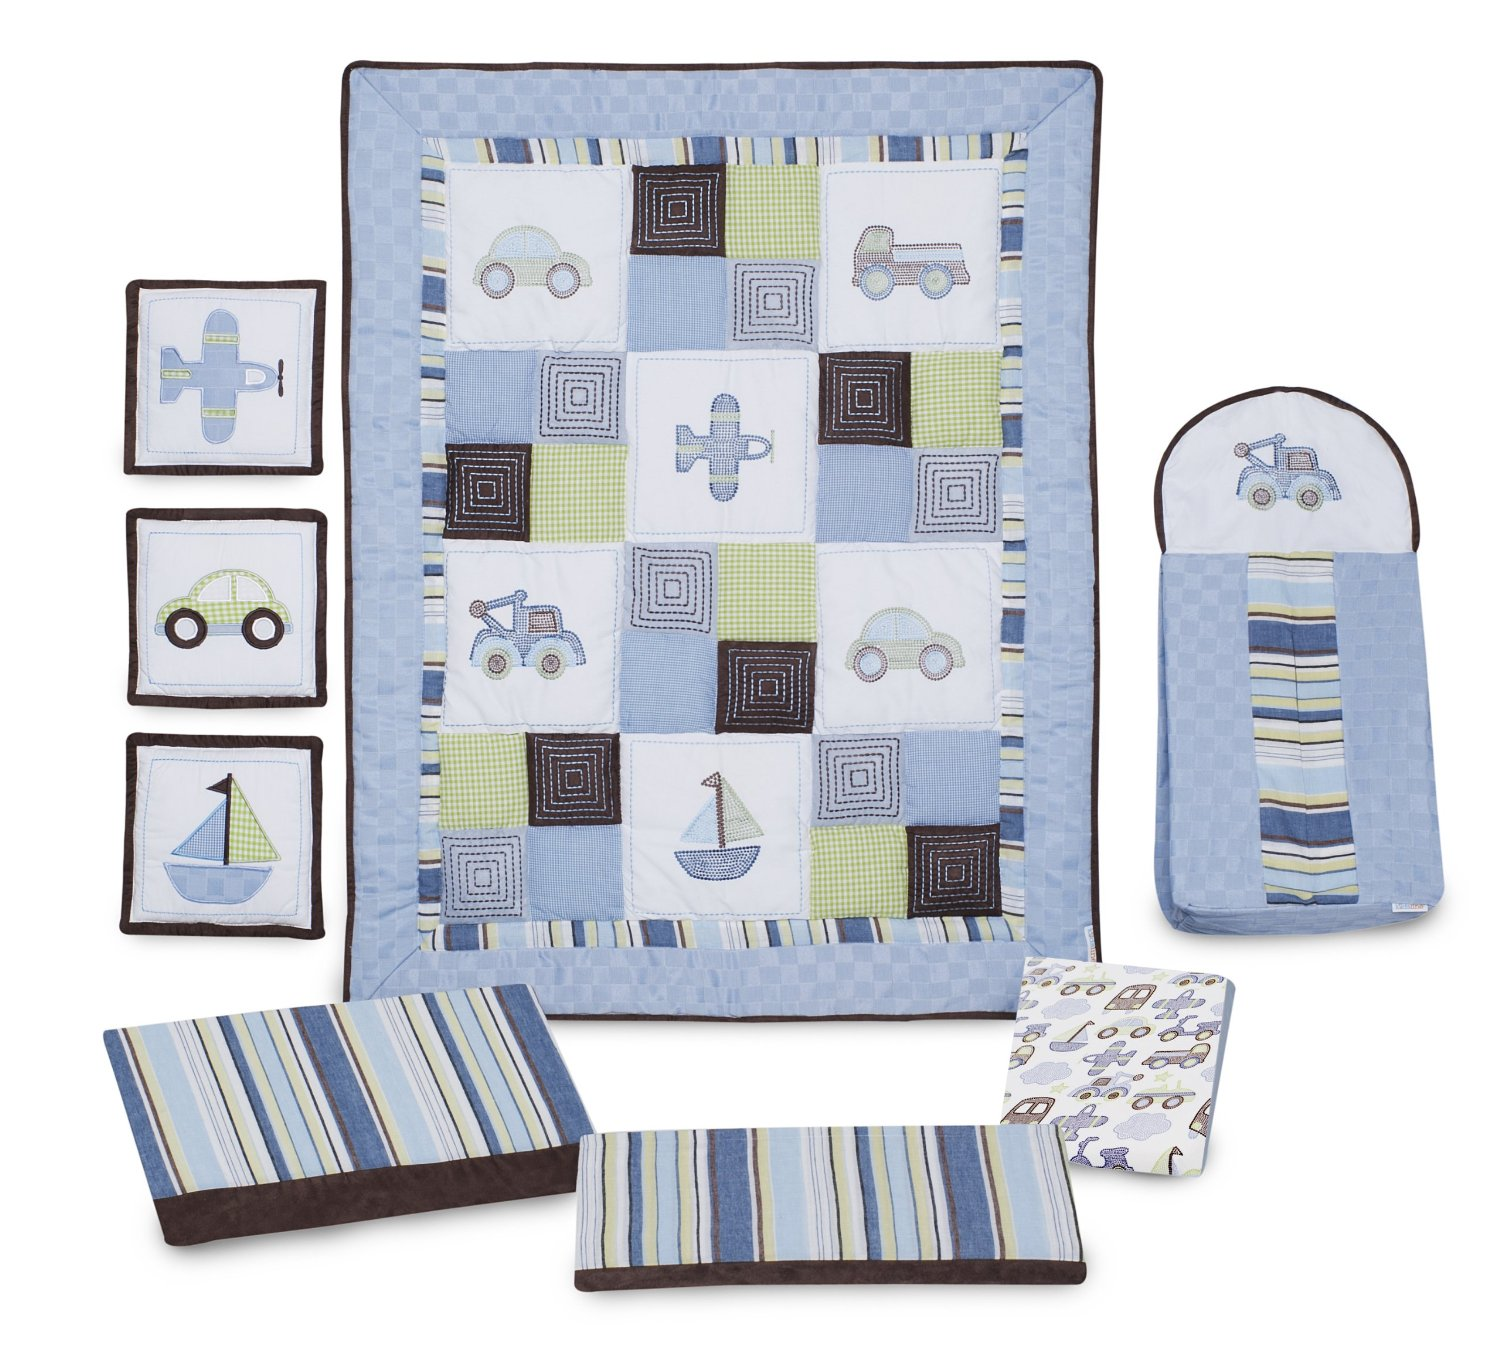 Kidsline Mosaic Transport Bedding And Accessories